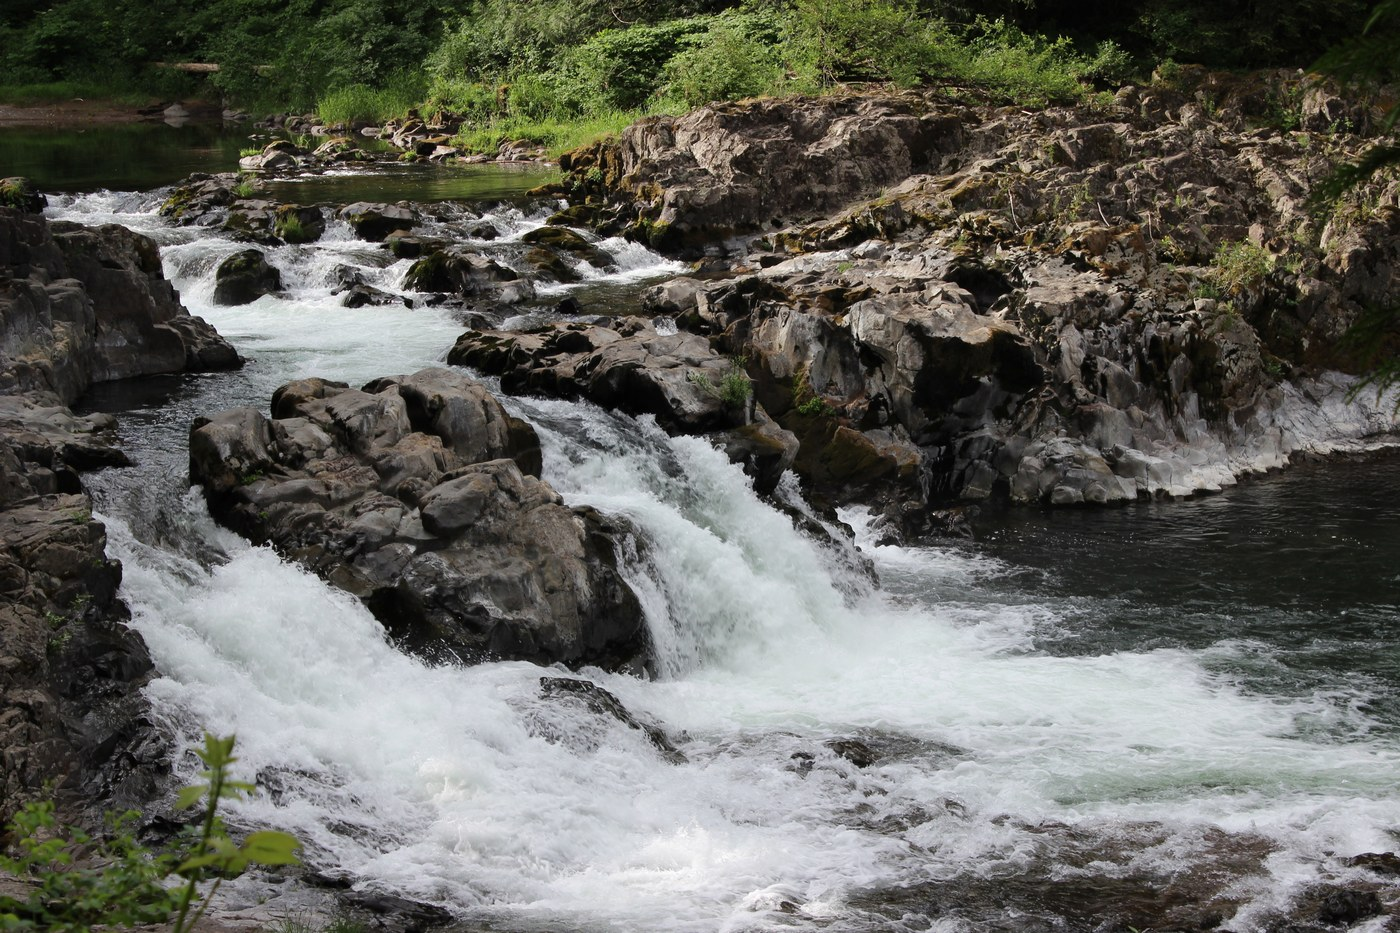 A wide short waterfall flowing over rocks. Photo by Tyaira36.